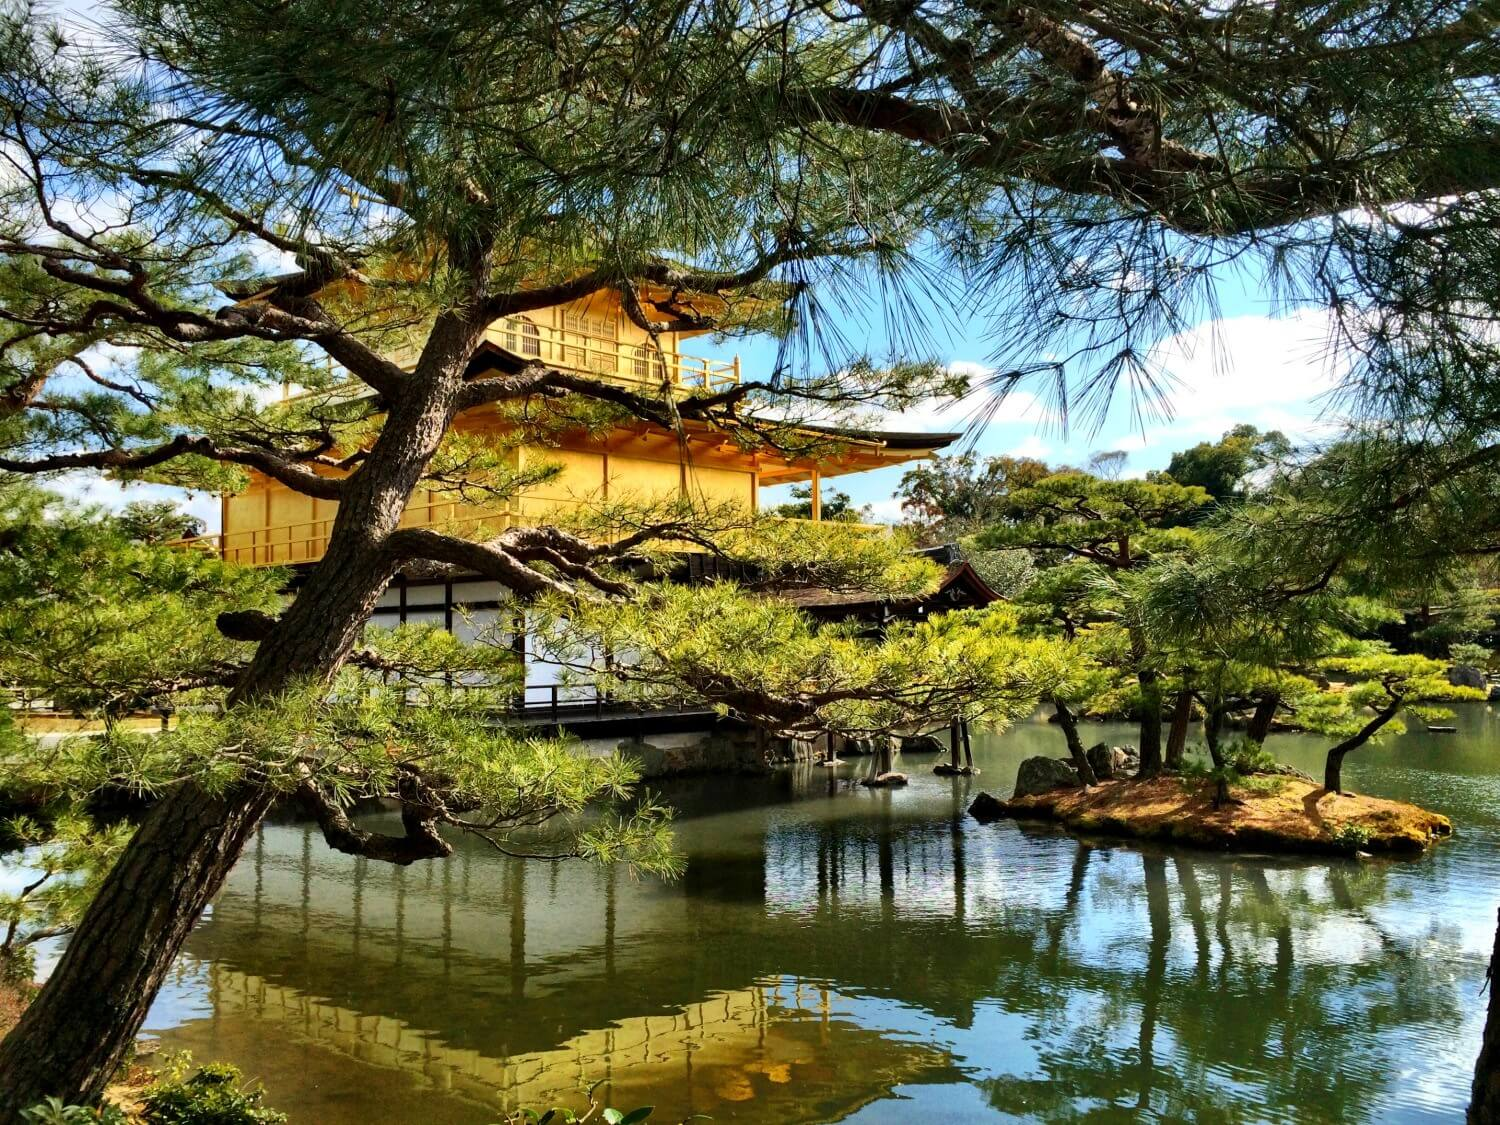 Photos of the Golden Pavilion in Kyoto